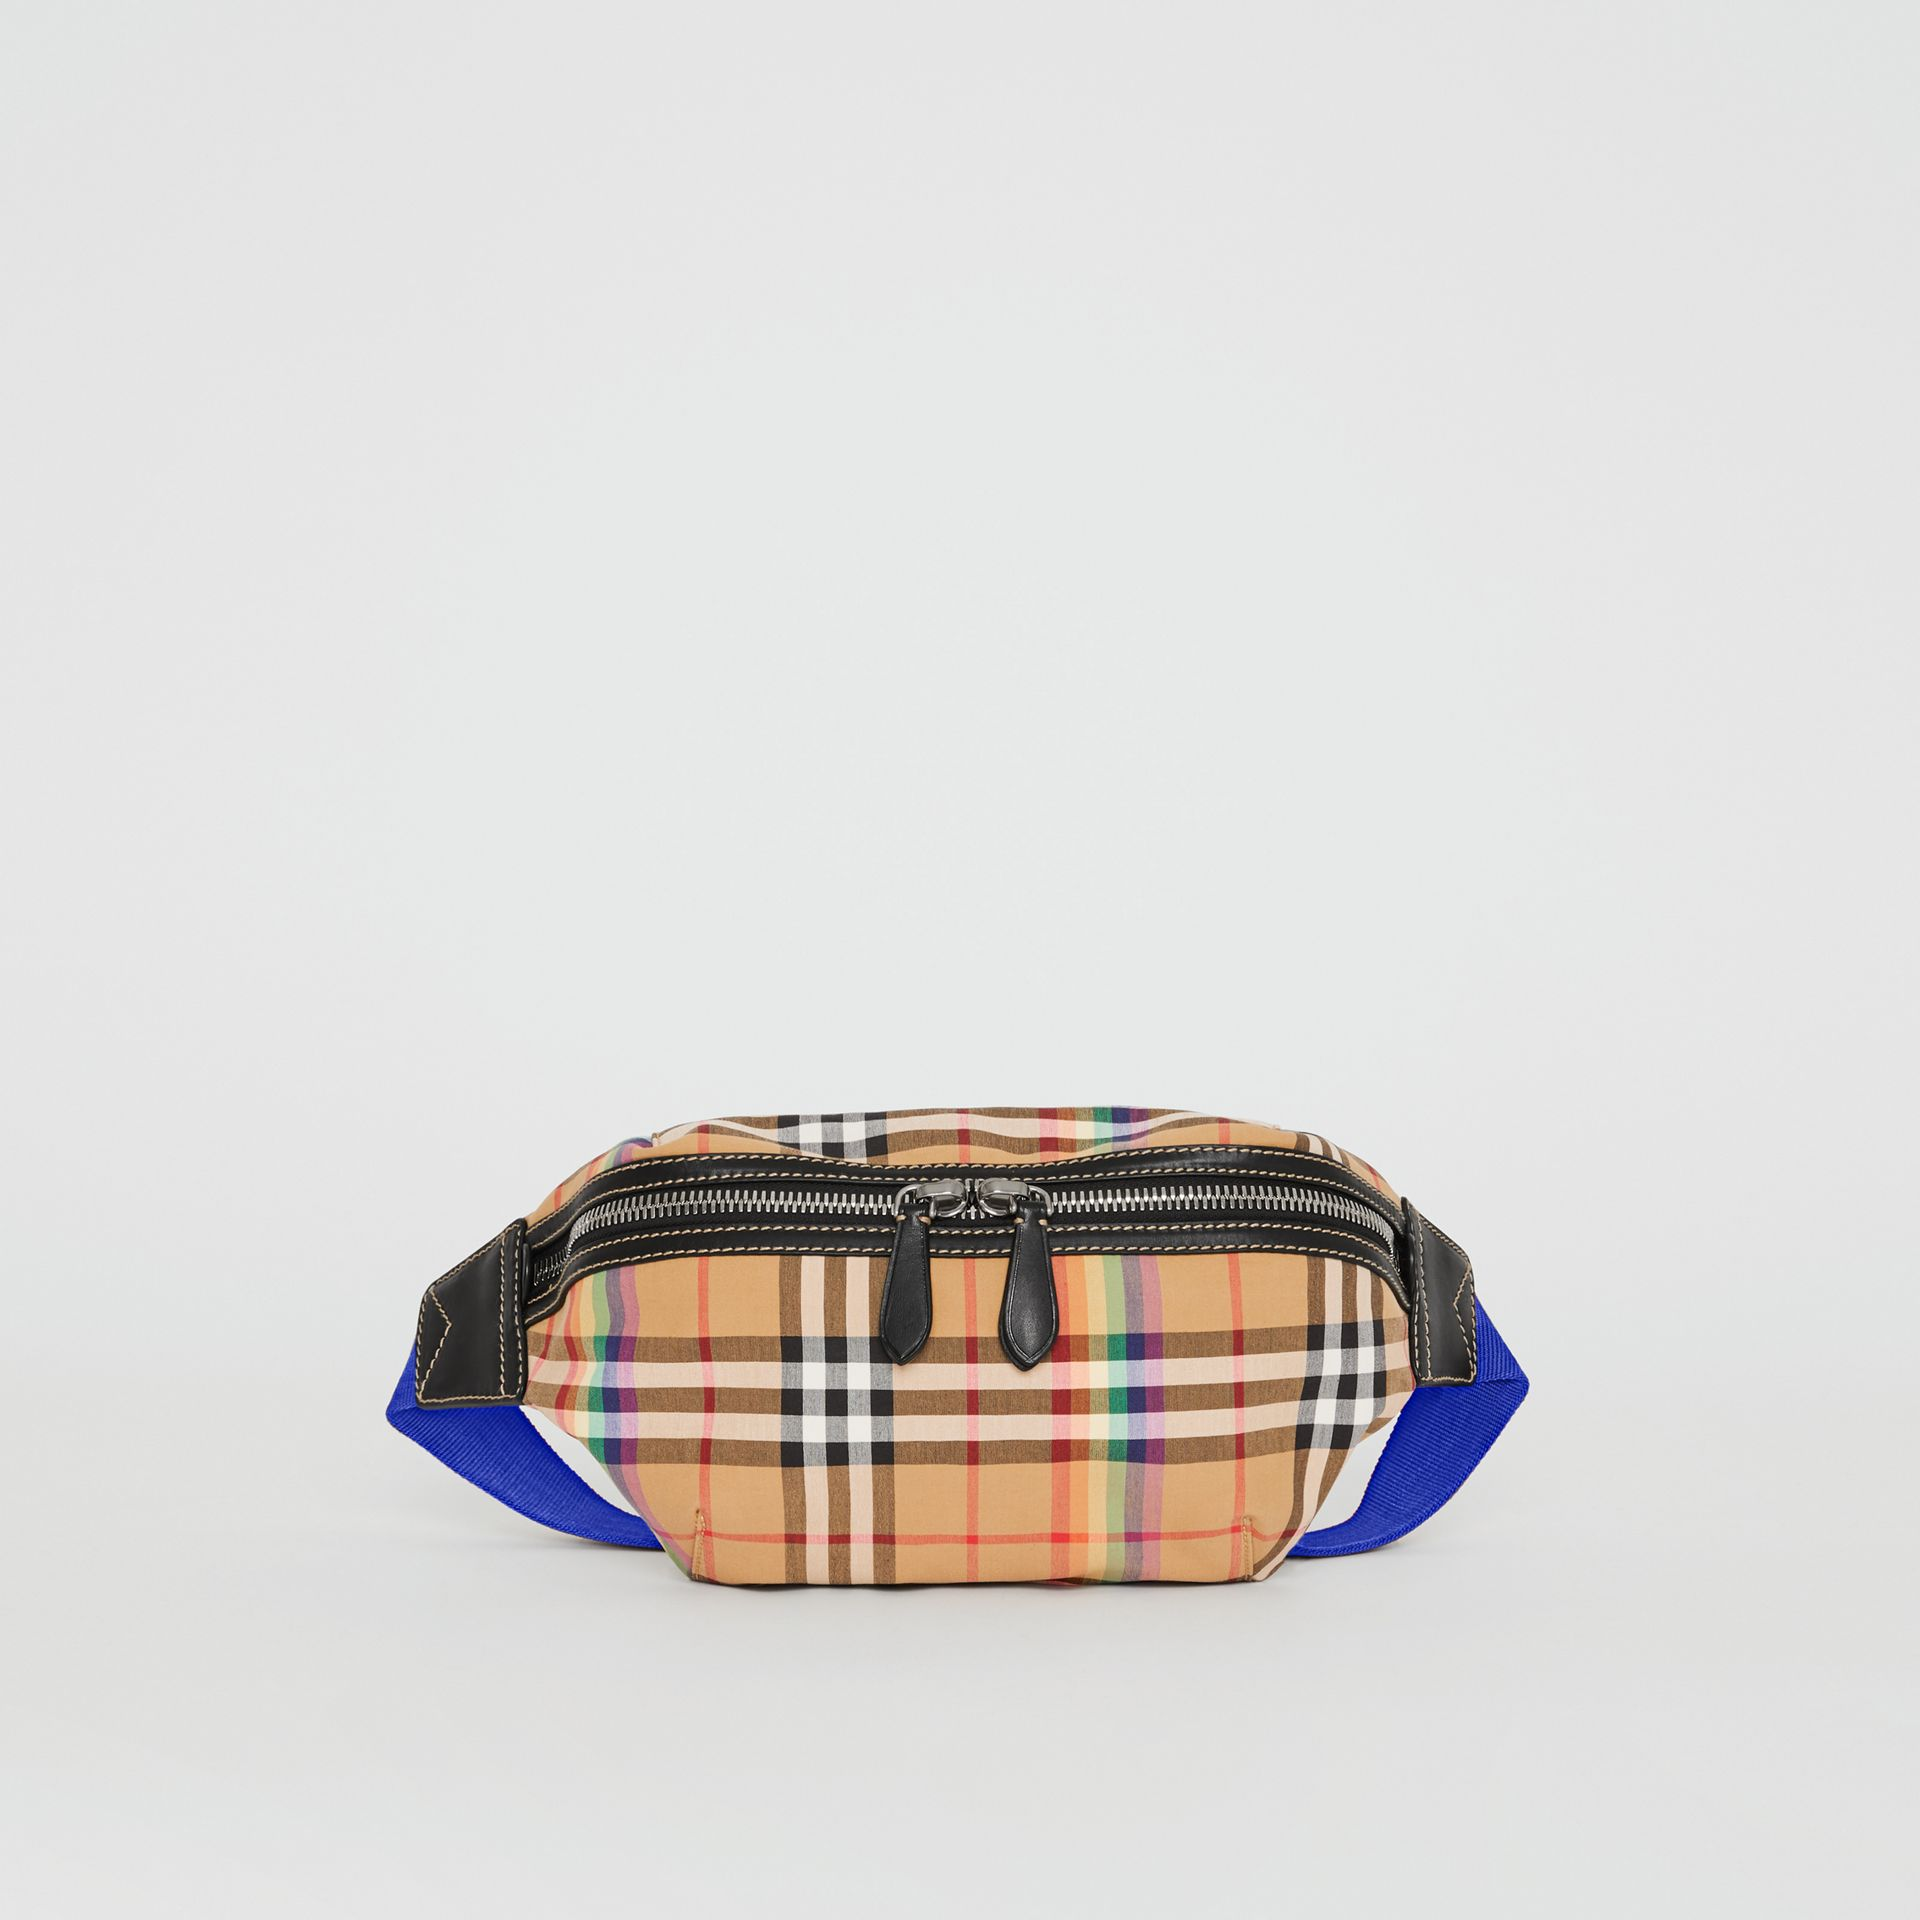 Medium Rainbow Vintage Check Bum Bag in Antique Yellow | Burberry - gallery image 3